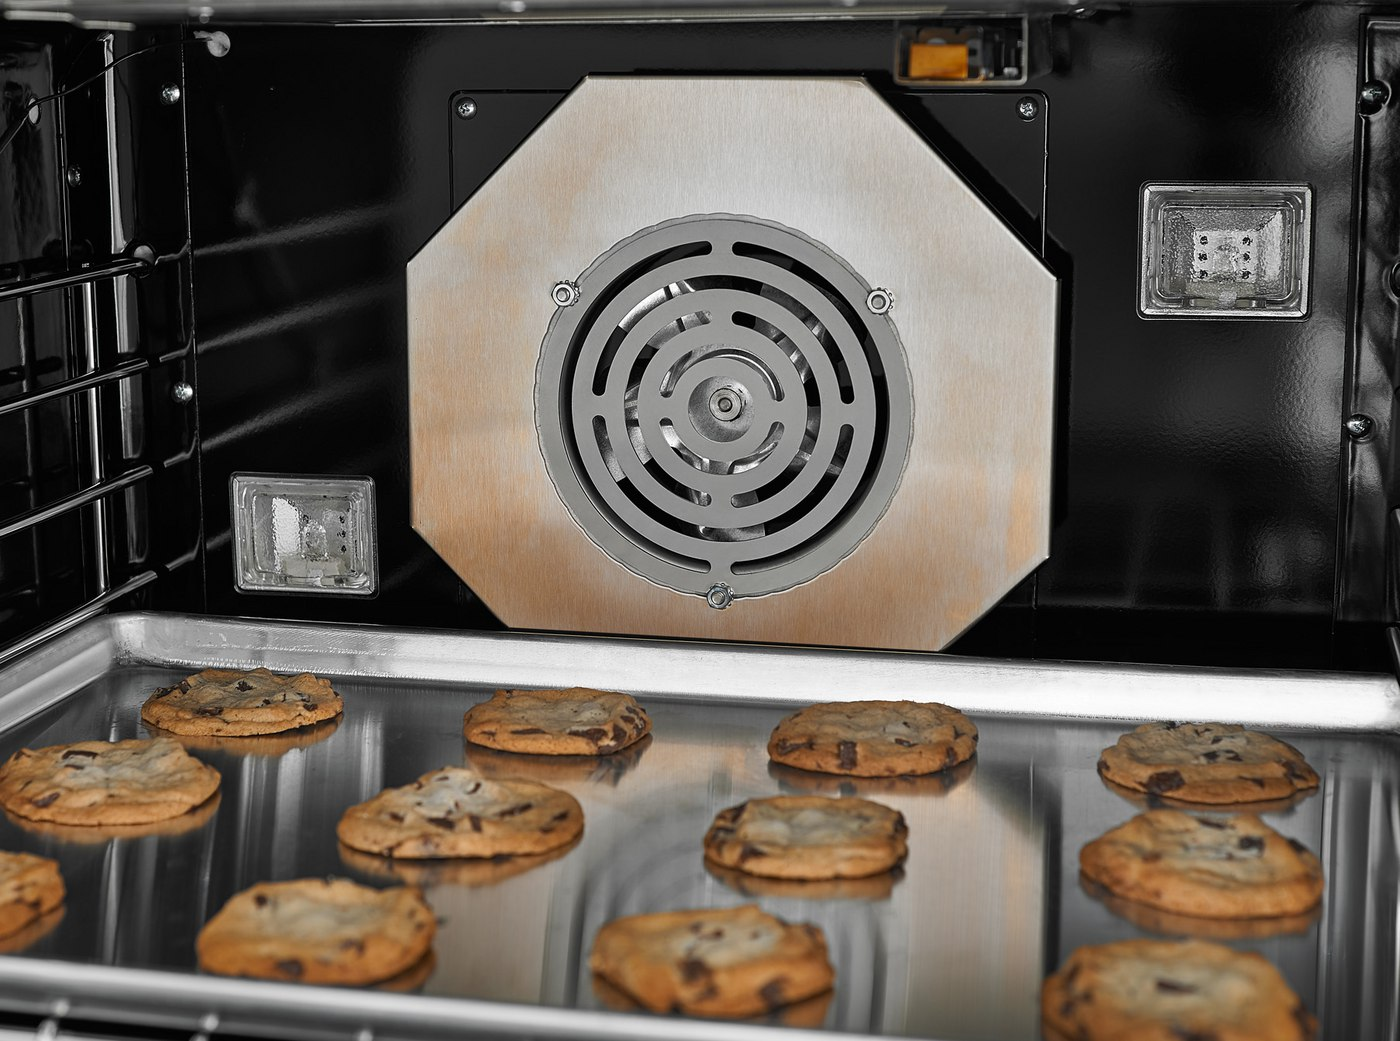 bluestar-pro-gas-range-convection